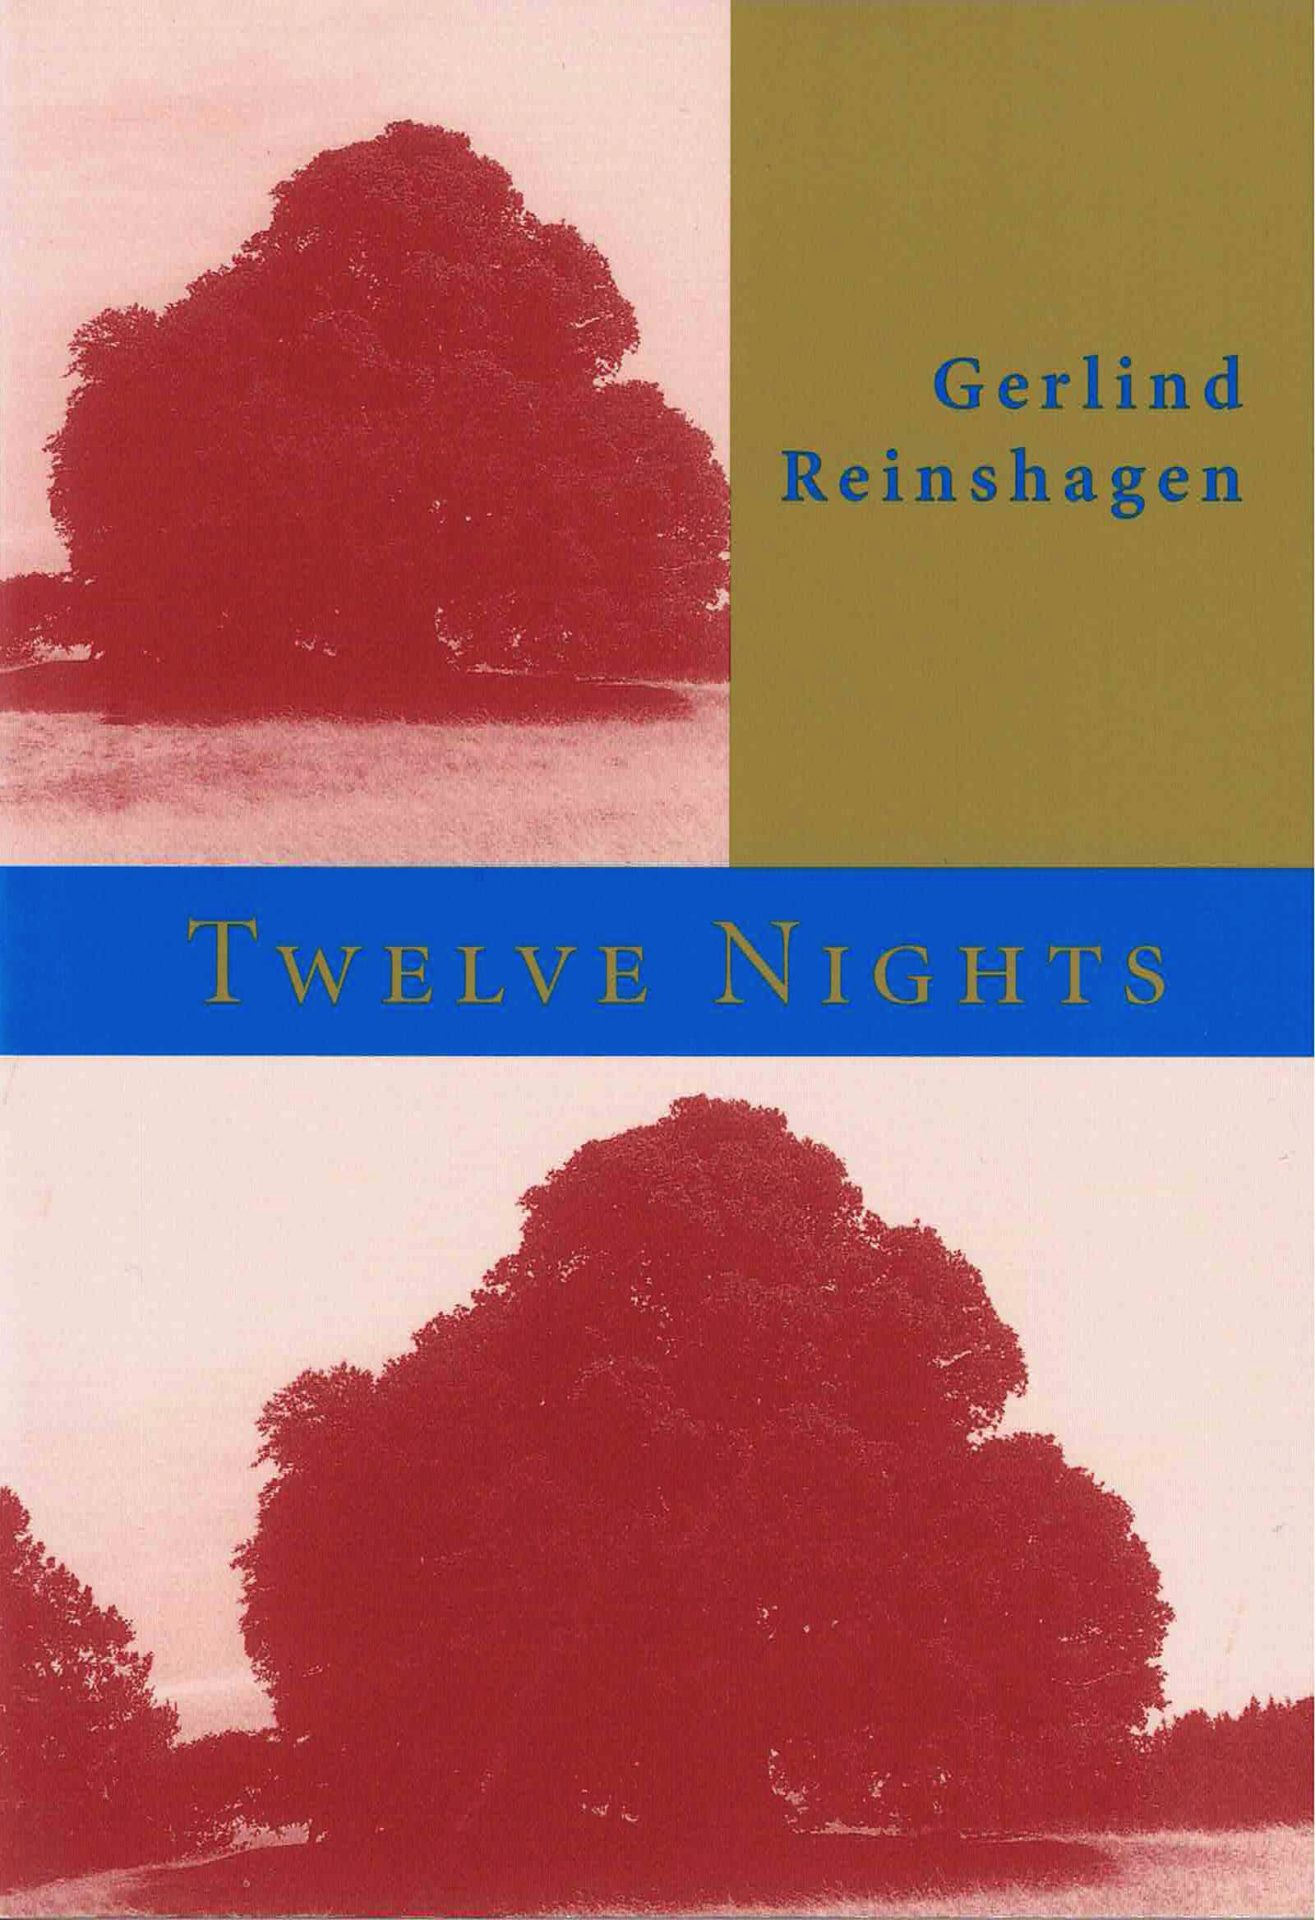 cover of Twelve Nights by Gerlind Reinshagen; repeated image of a large tree with a red-tint